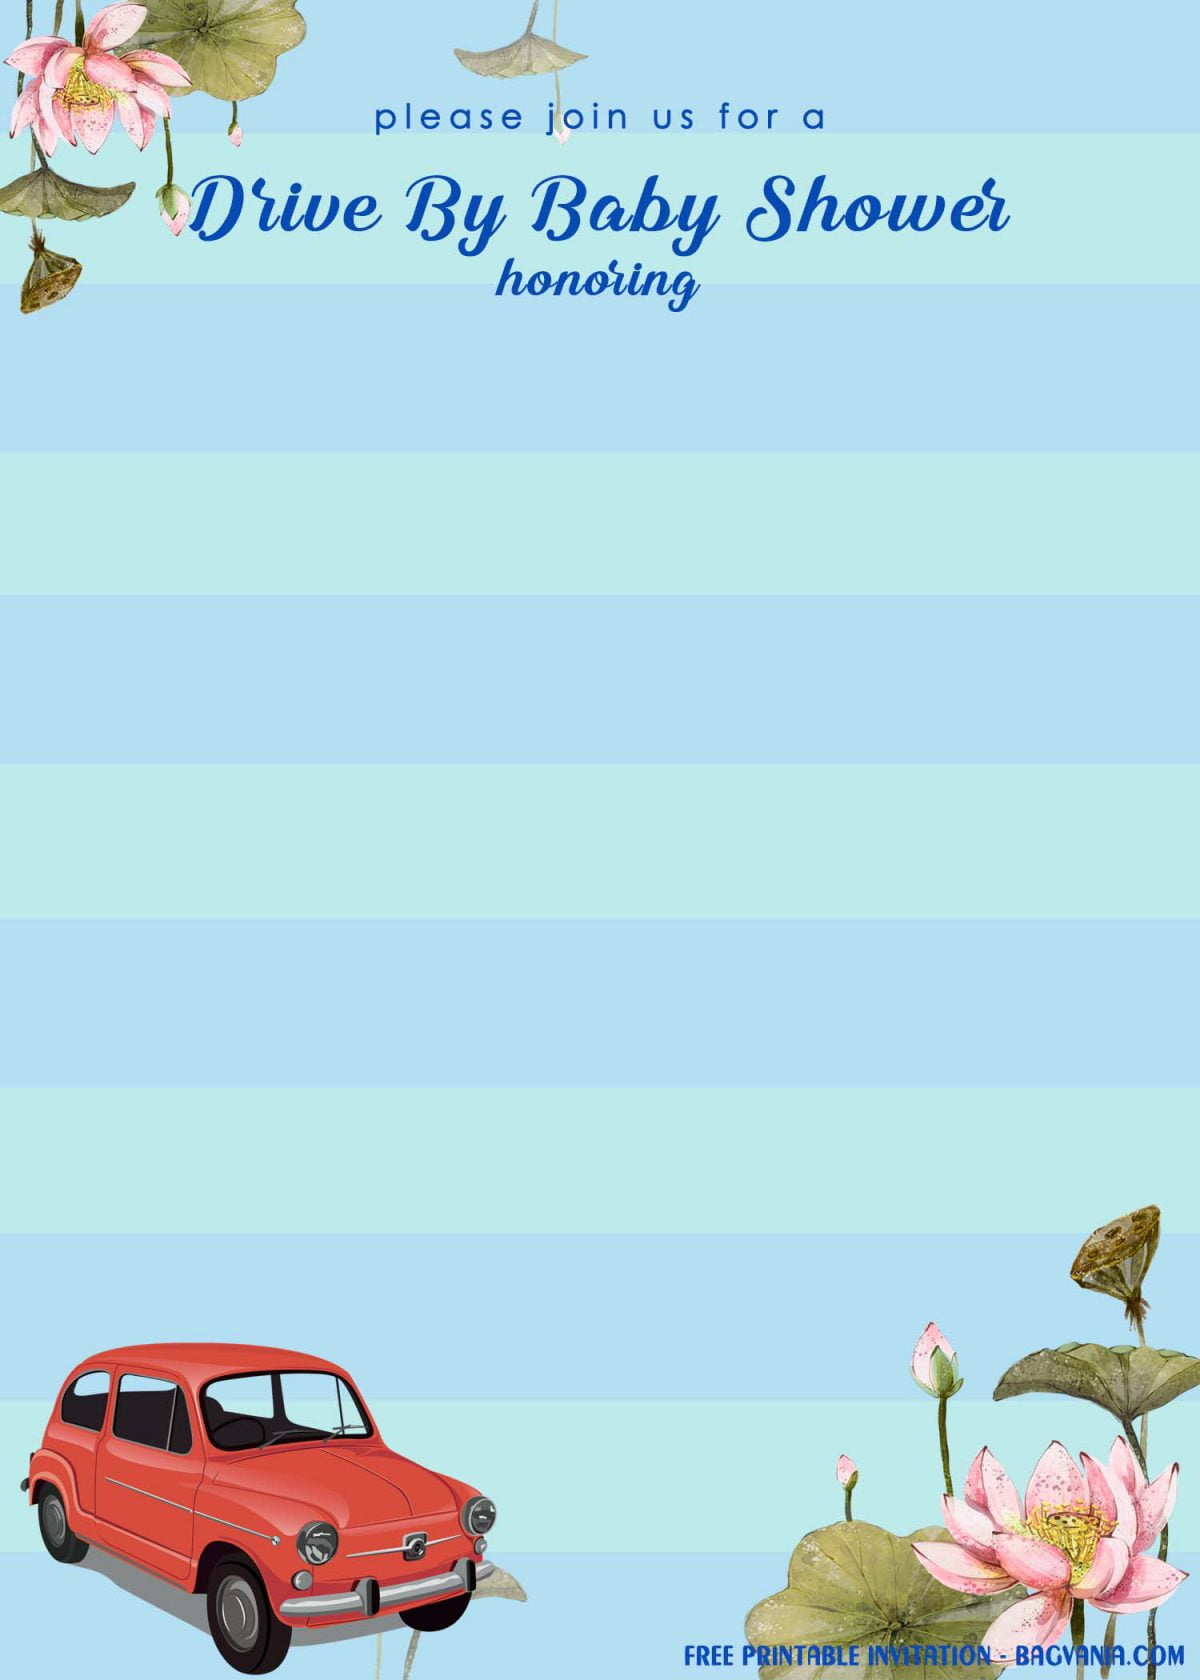 Free Printable Blue Stripes Drive By Baby Shower Invitation Templates With Retro Car Image